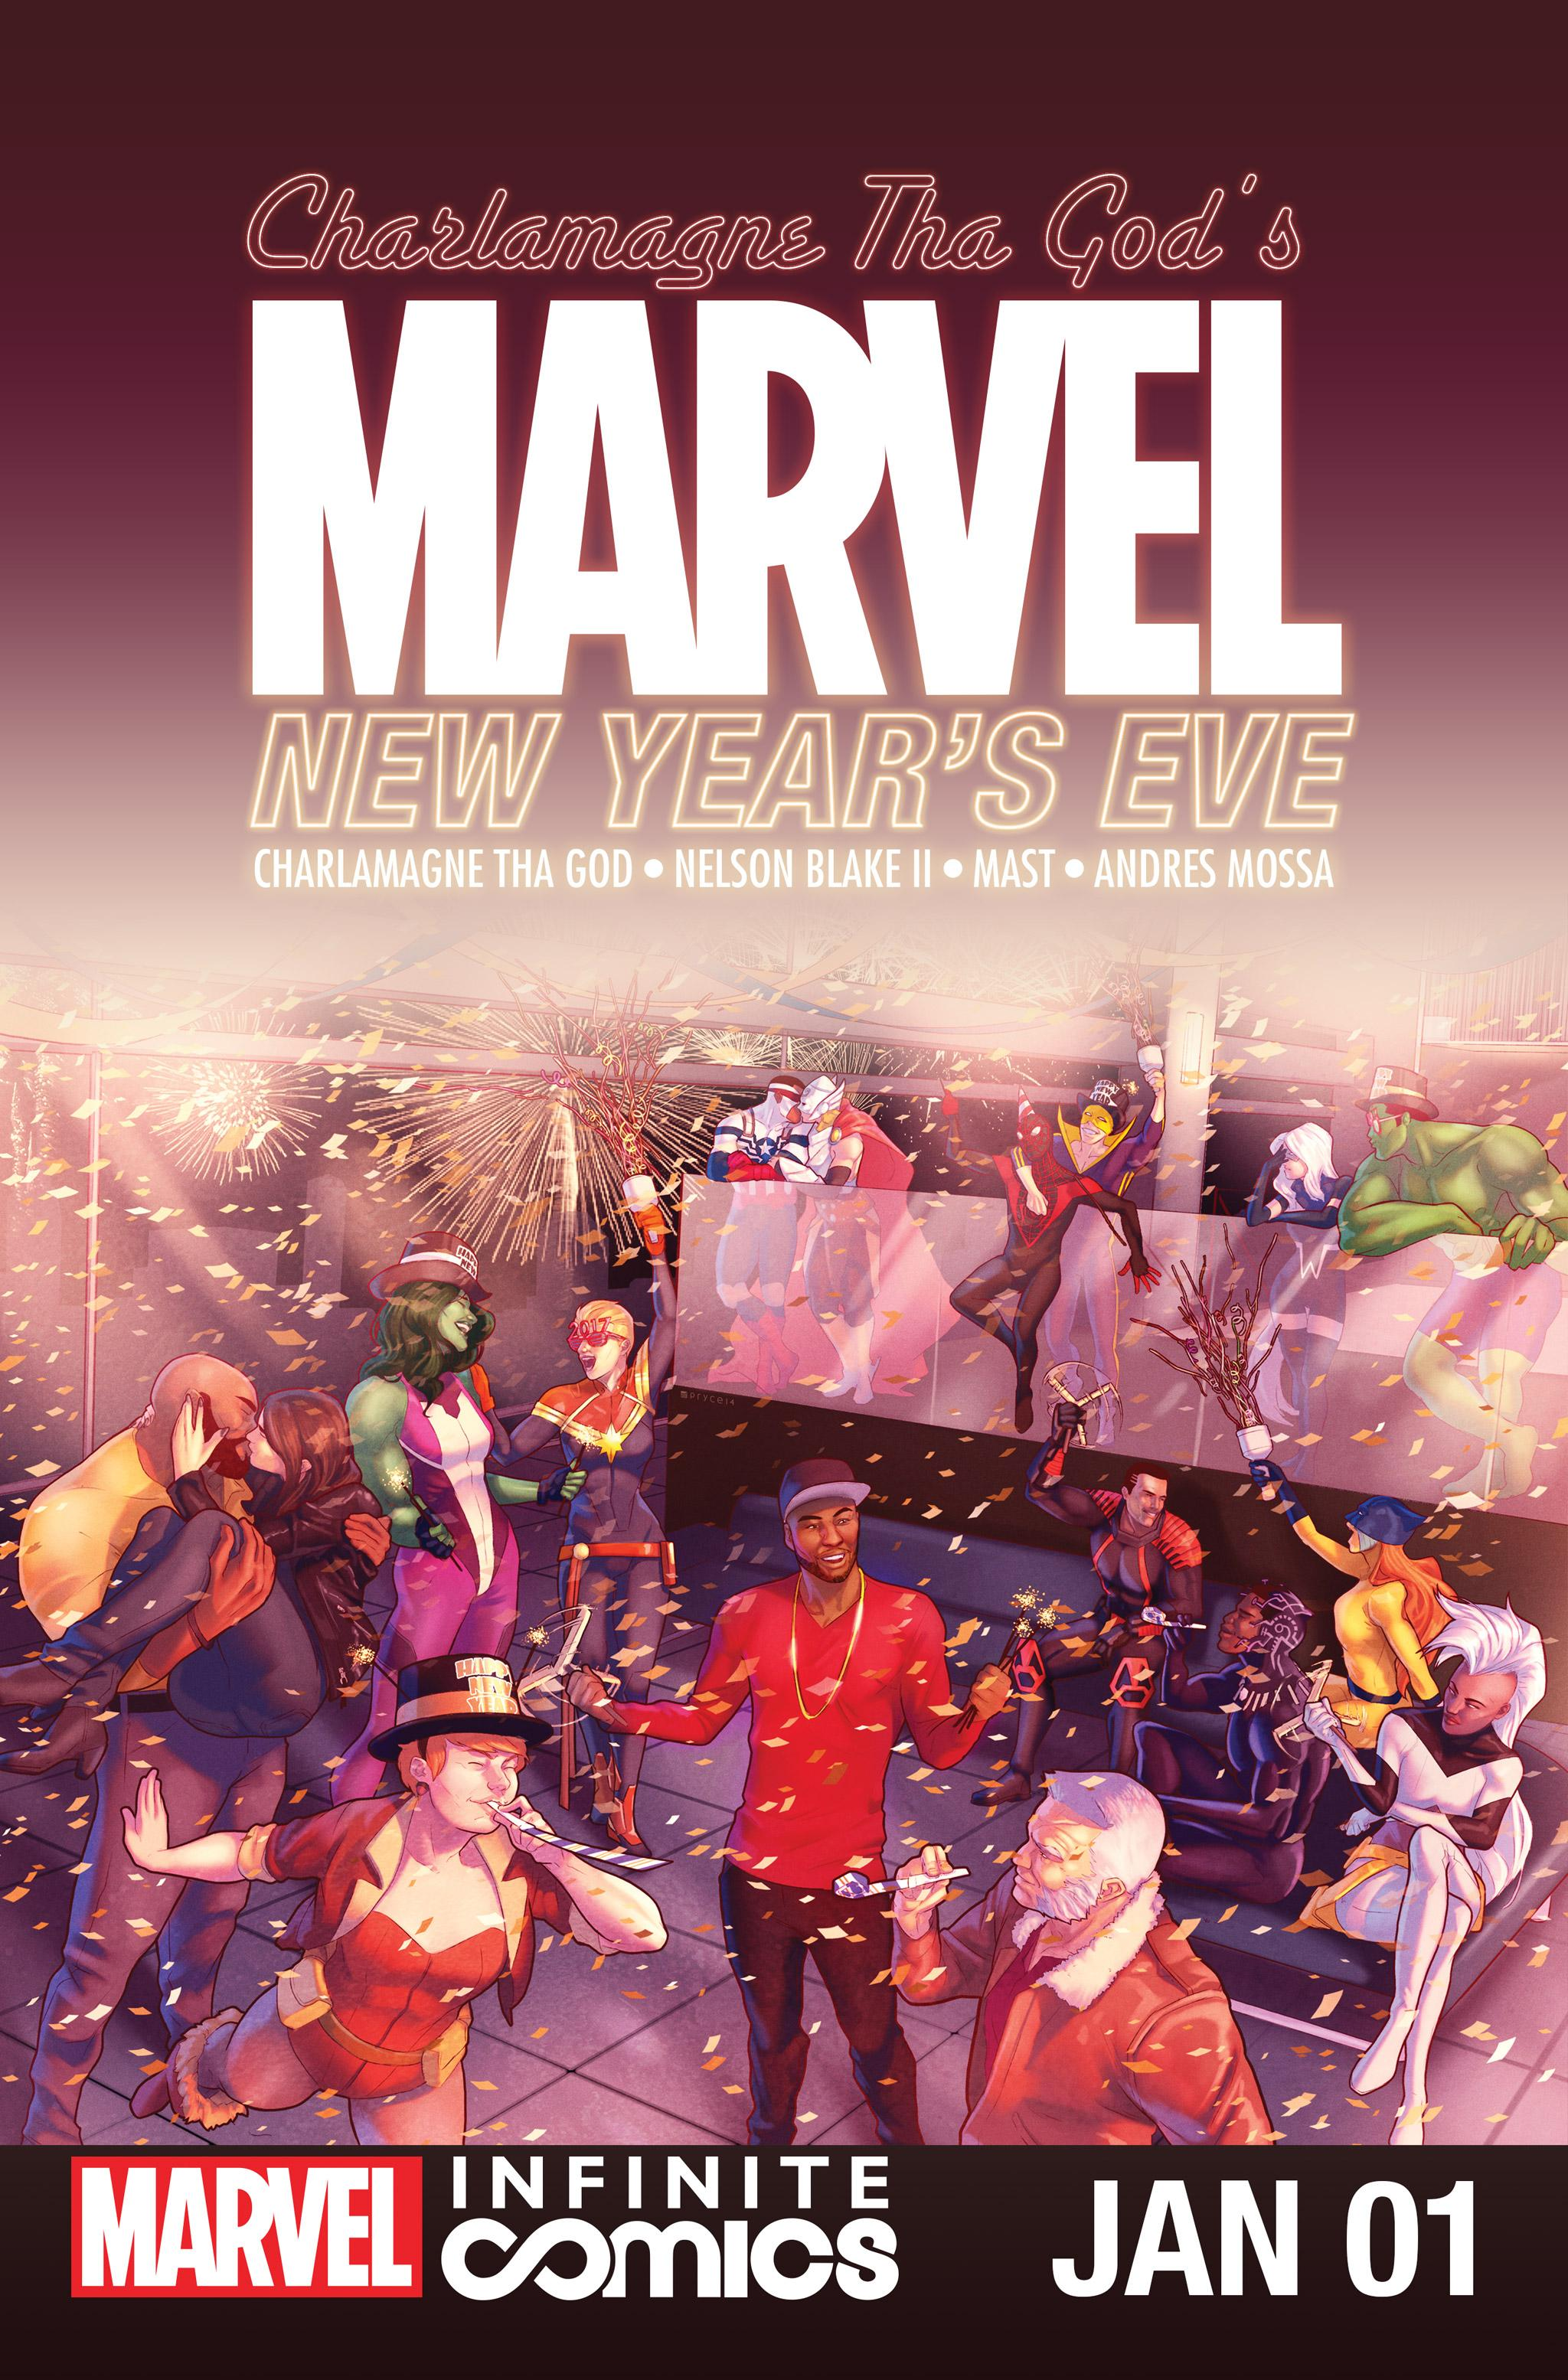 Marvel New Year's Eve Special Infinite Comic Vol. 1 #1